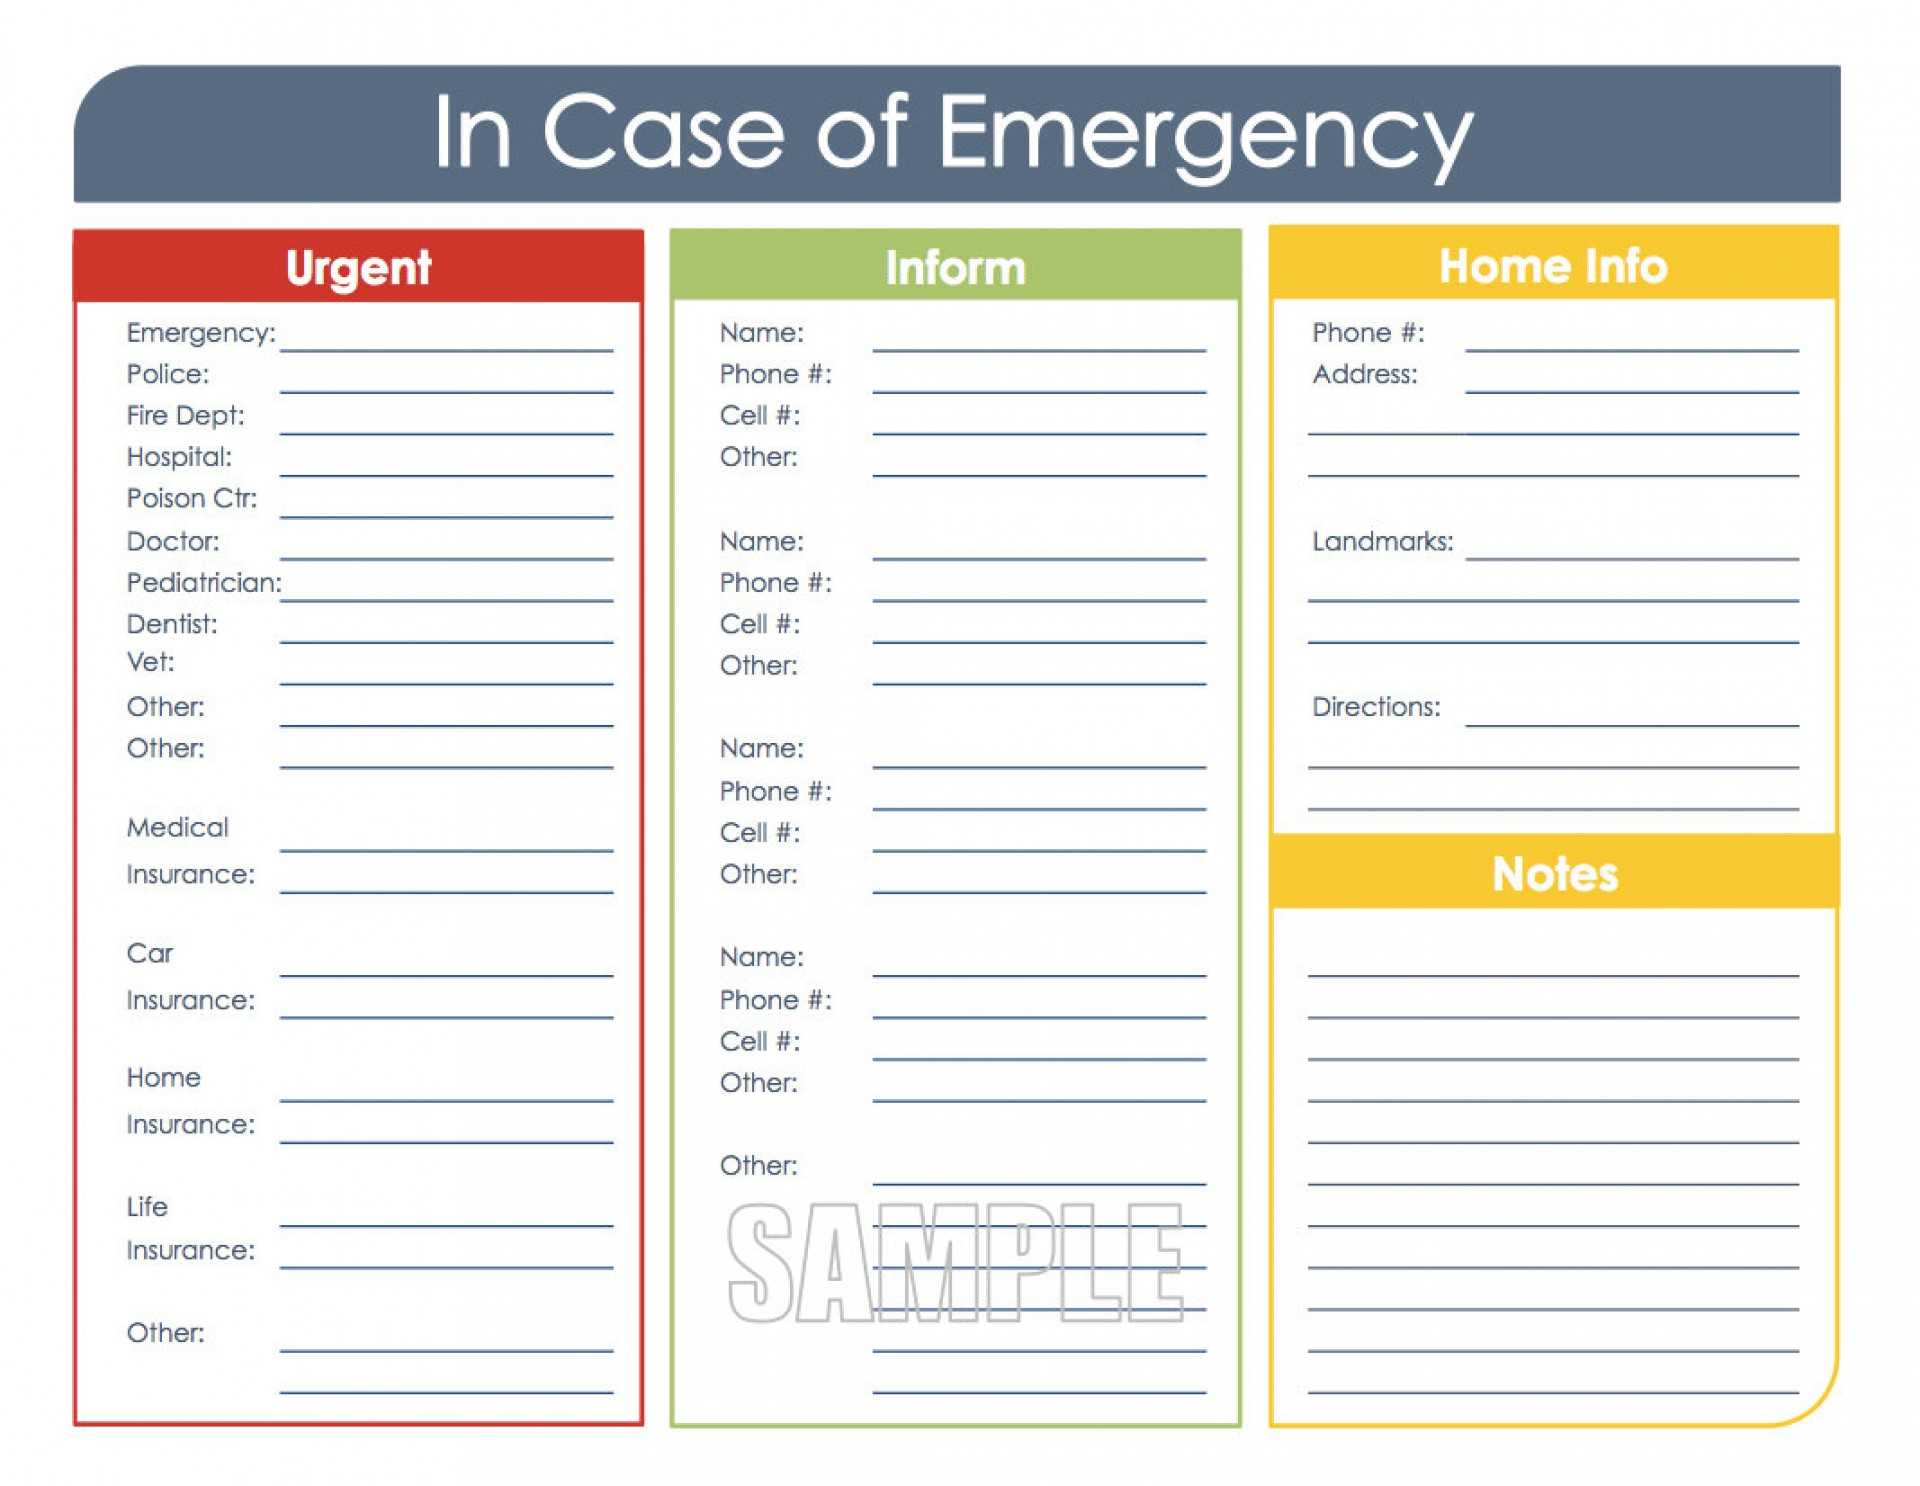 046 Template Ideas Emergency Contact Card Il Fullxfull With In Case Of Emergency Card Template